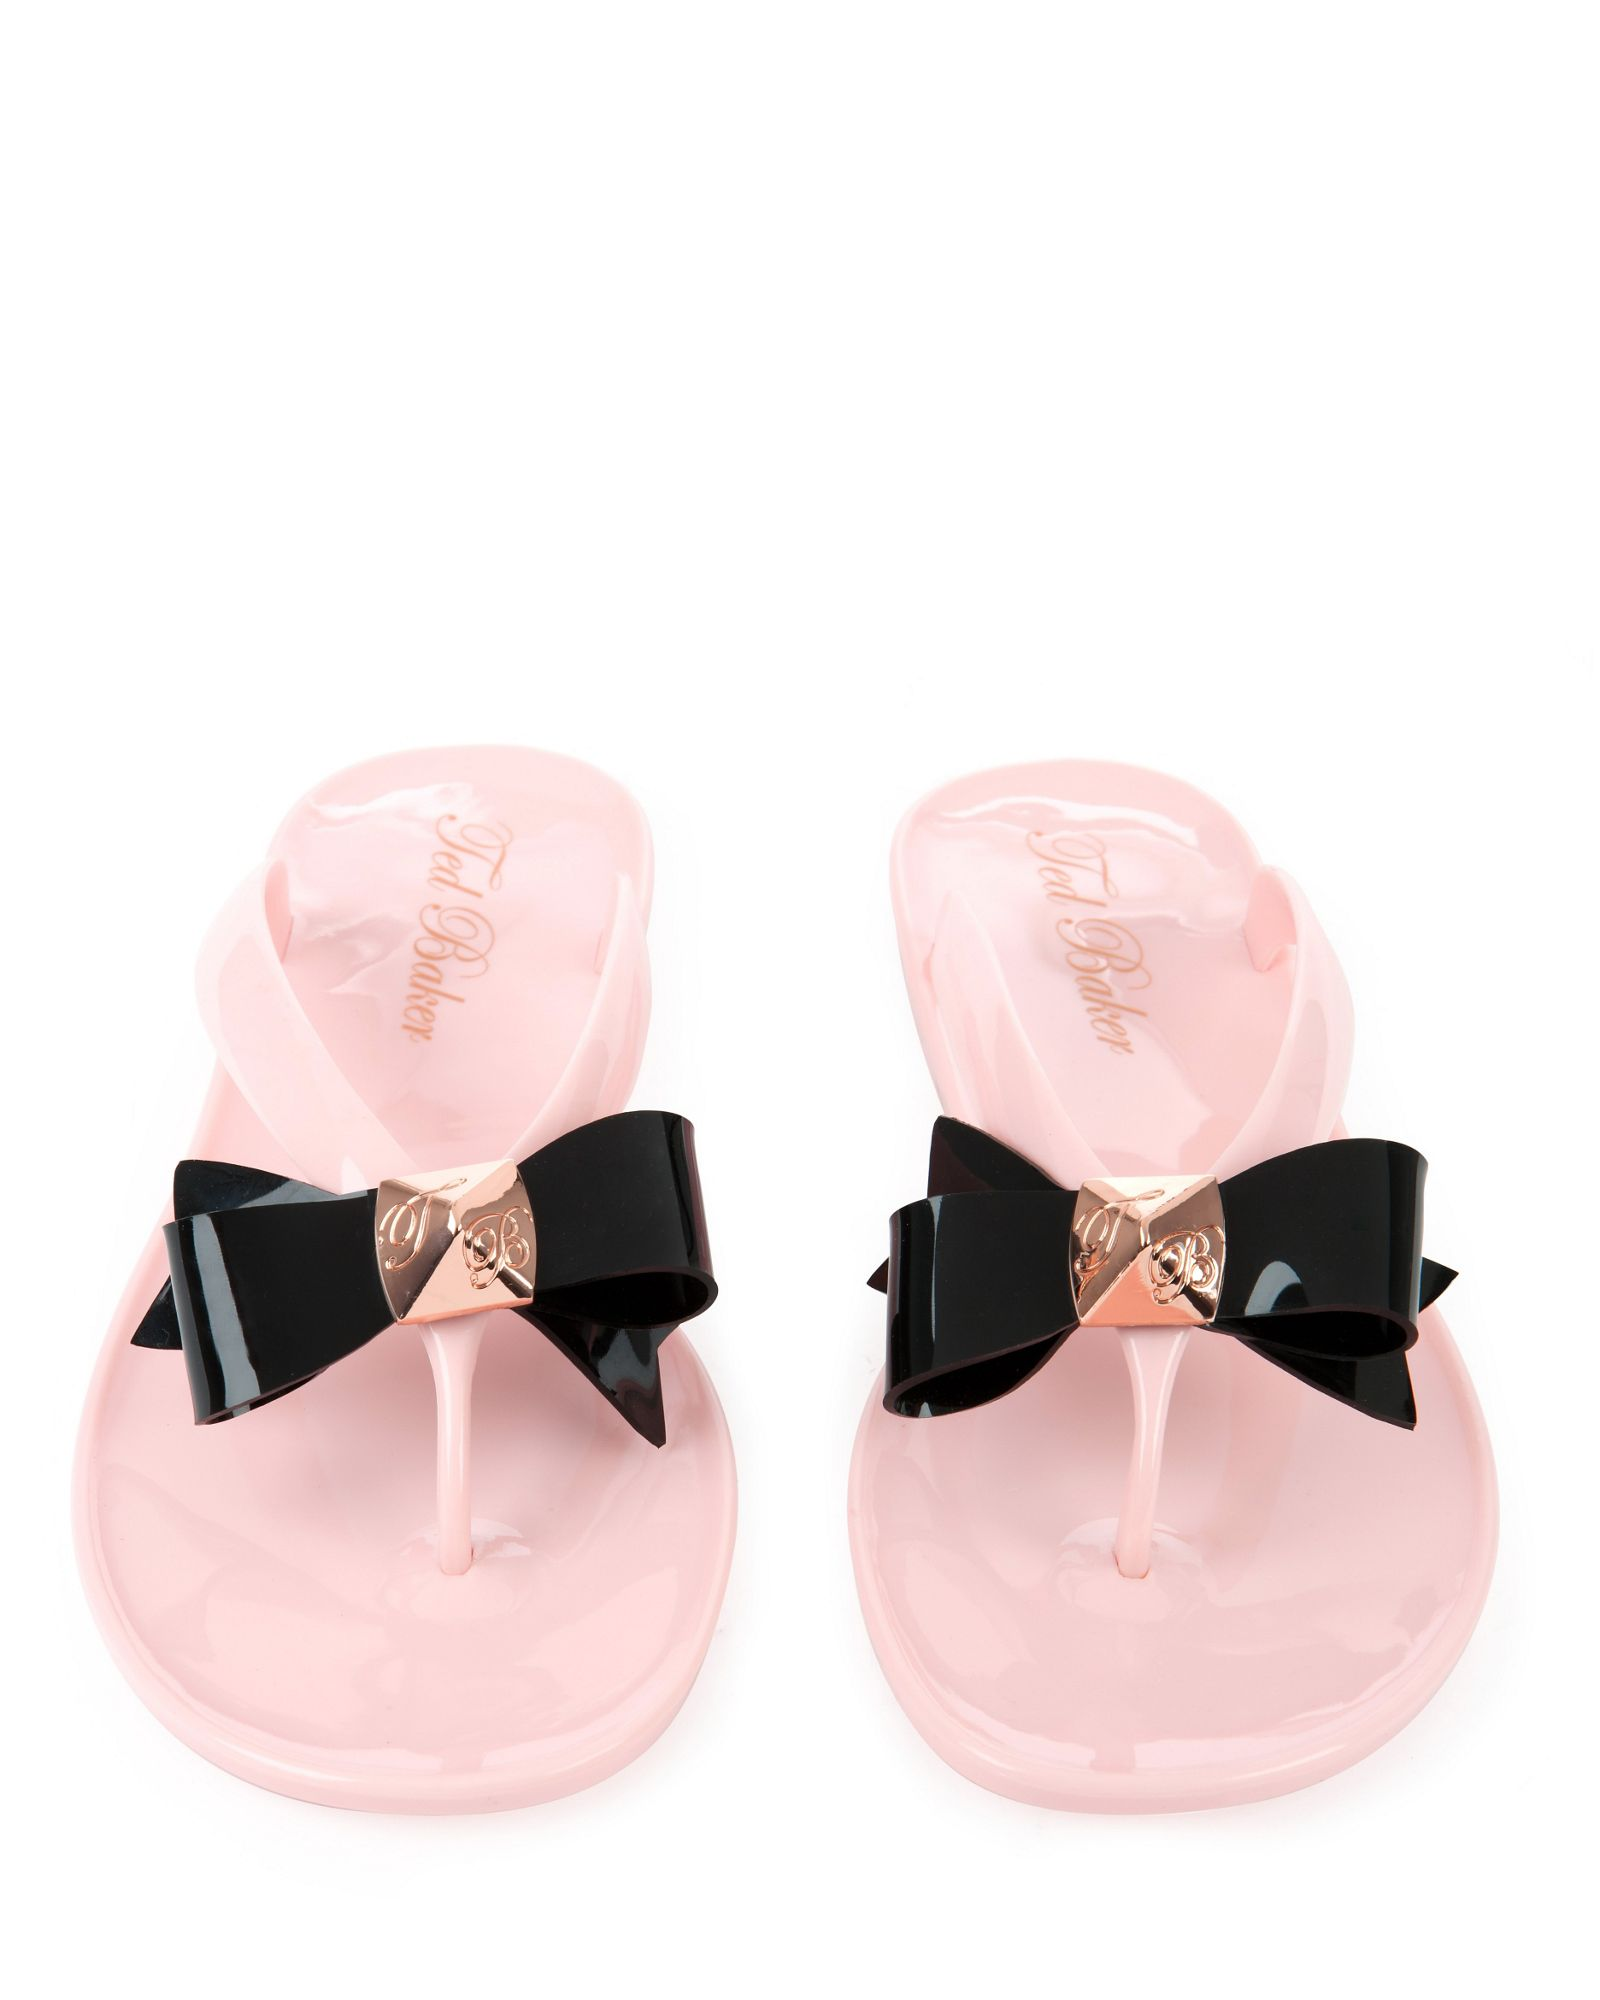 fc3ad73c118aa9 Ted baker Polee Bow Flip Flop in Pink